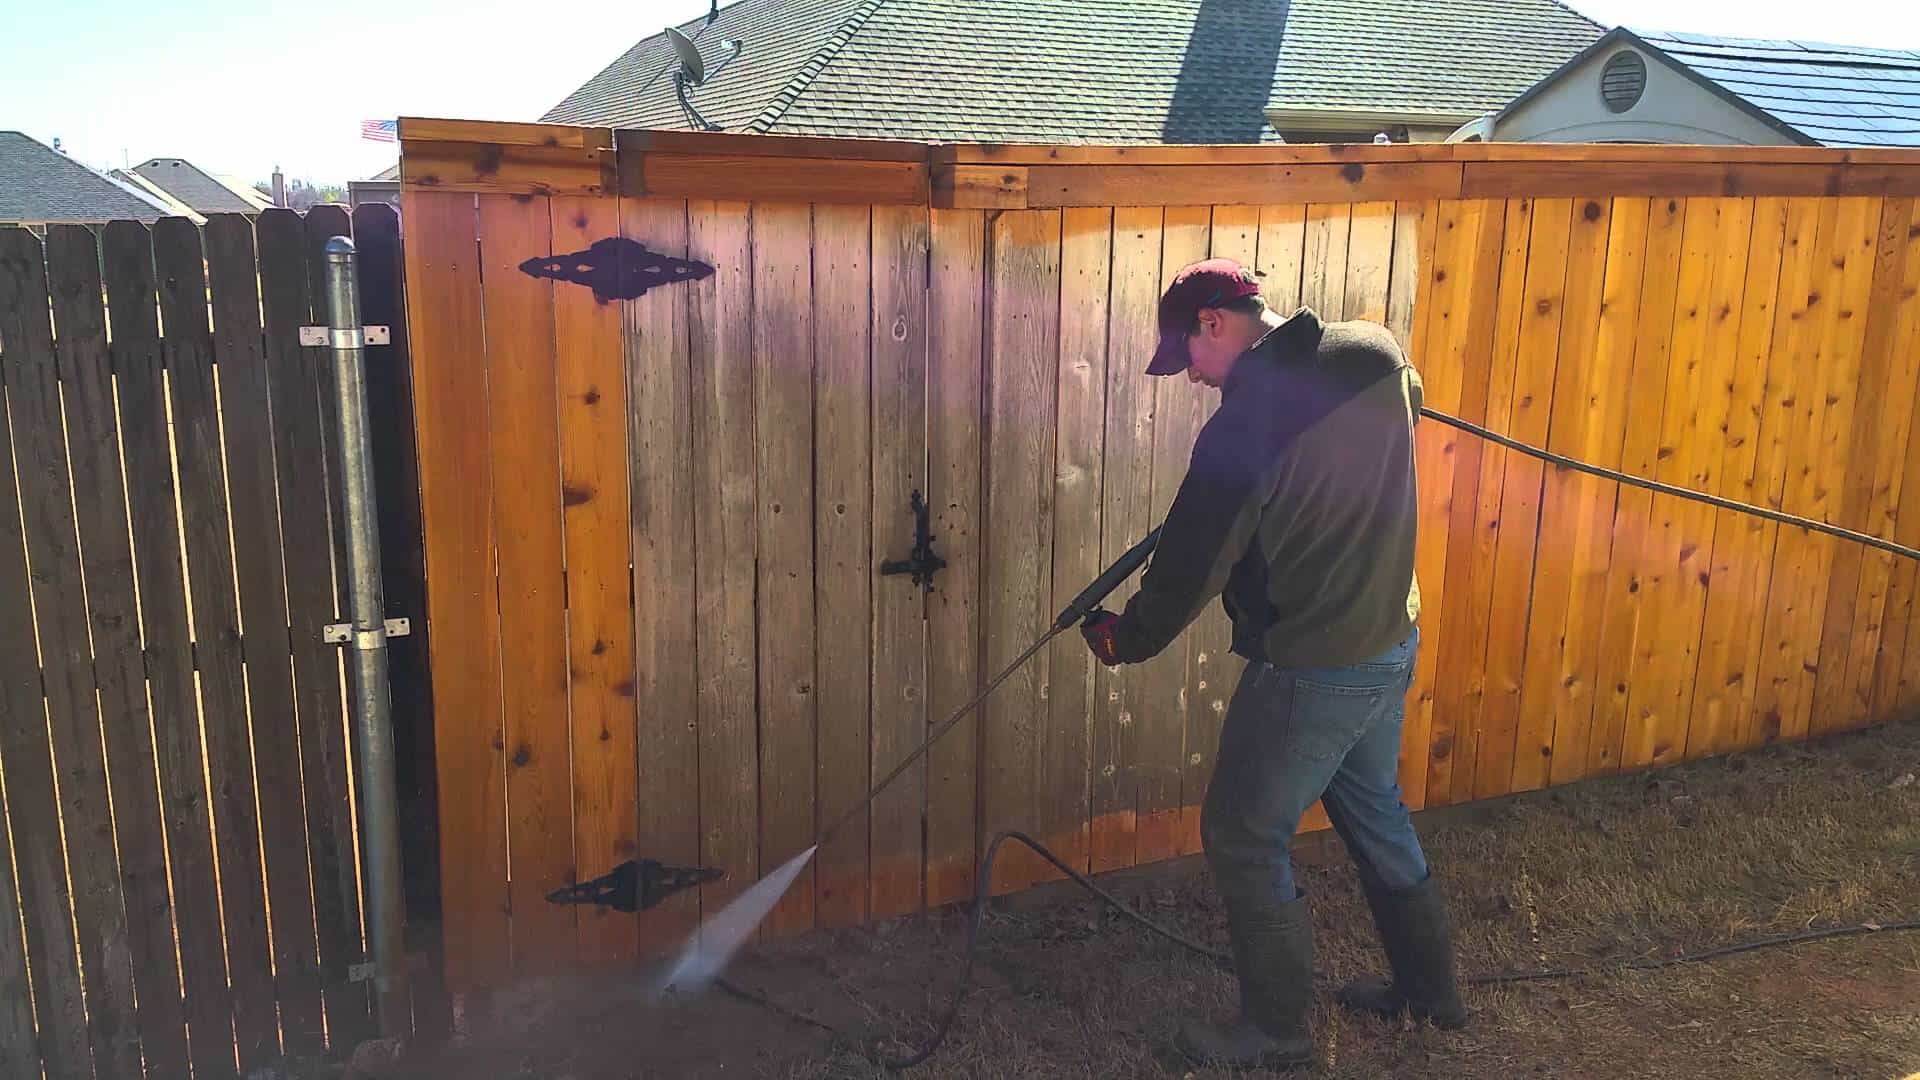 Tips for Cleaning Mold, Mildew from Siding Without Using Bleach